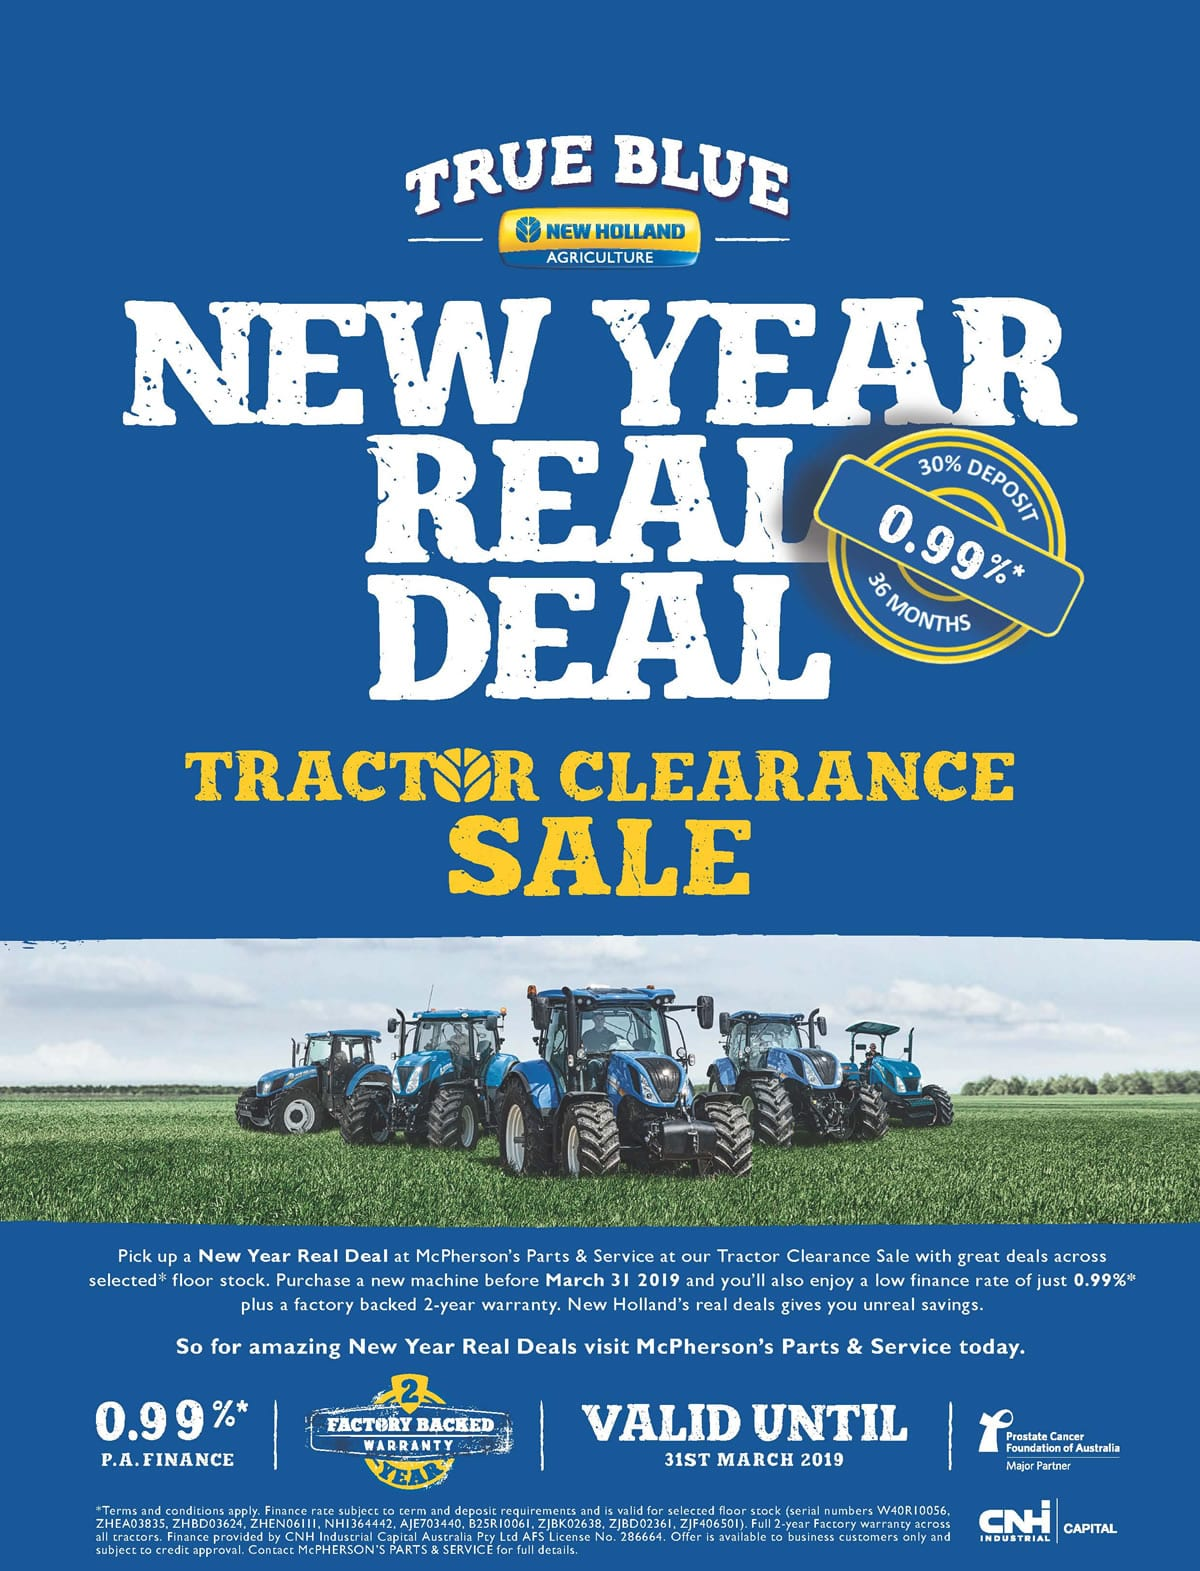 Real Deal Tractor Clearance Sale on now!